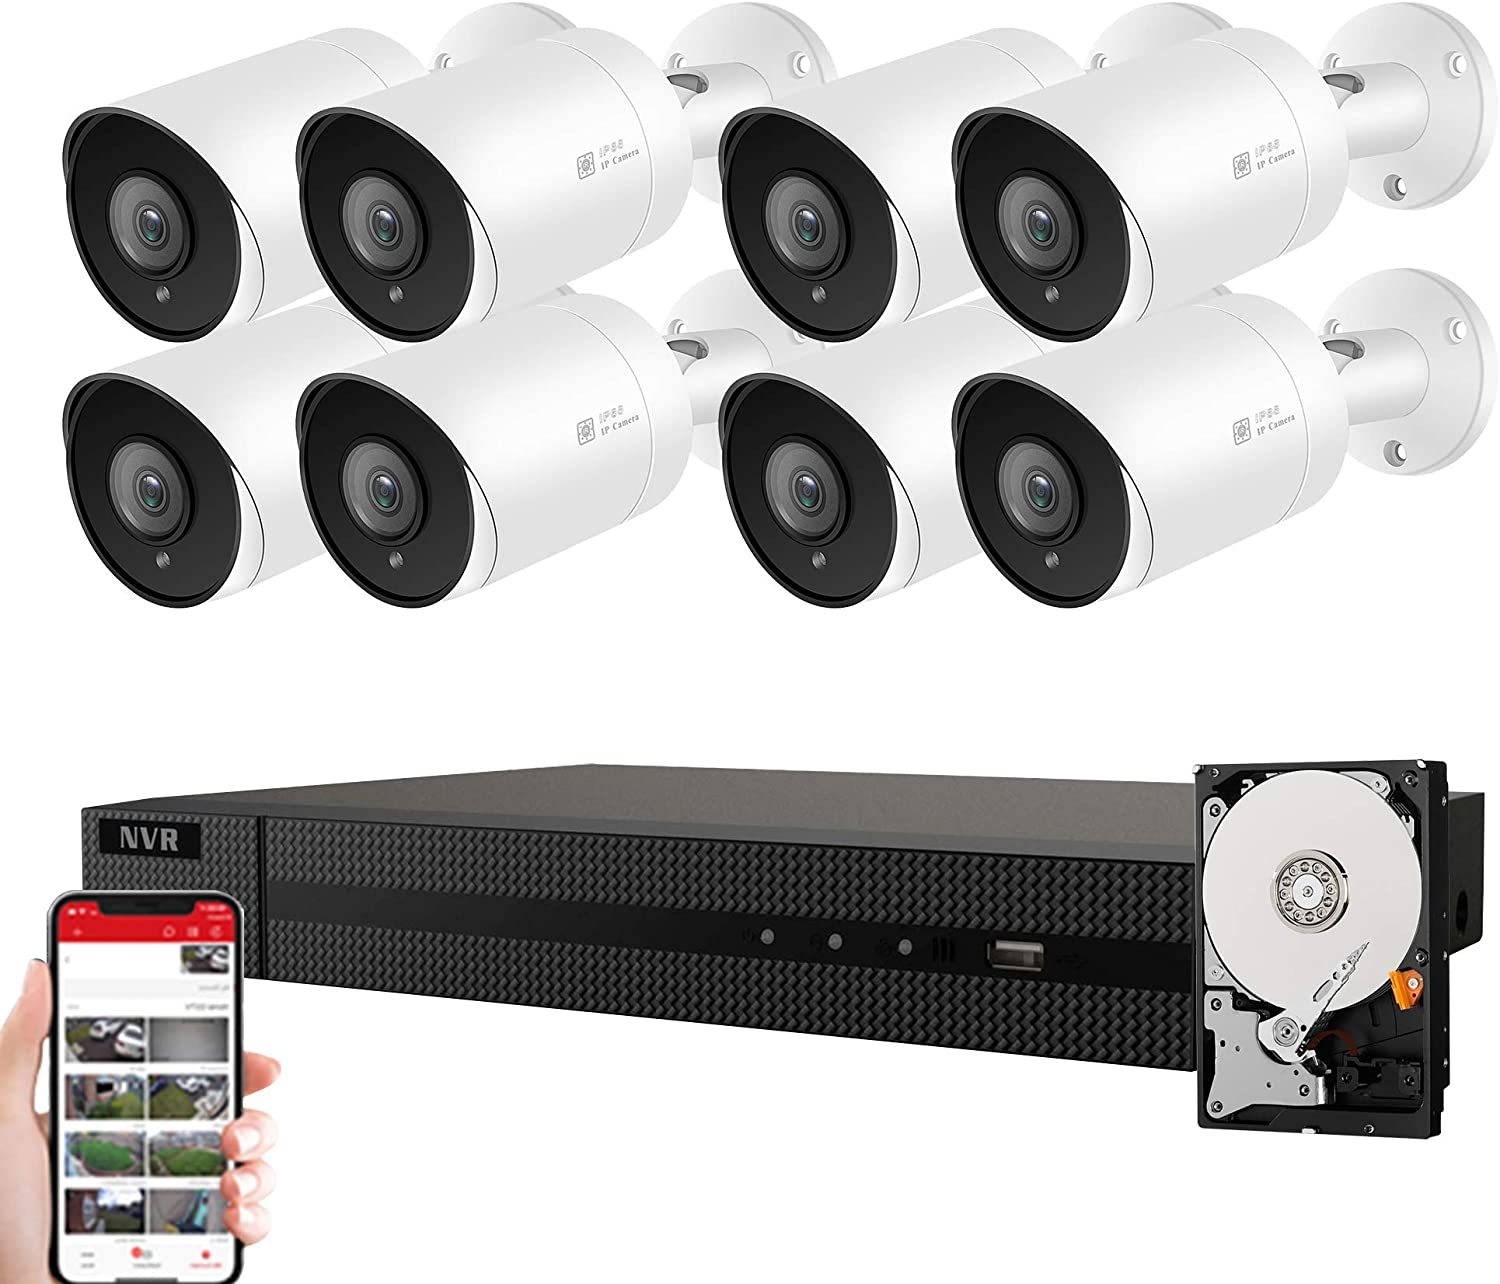 Anpviz 5MP IP POE Security Camera System, 16CH 4K H.265 NVR with 4TB HDD with (8) 5MP Outdoor IP POE Bullet Cameras Home Security System with Audio, 98ft Night Vision, IVMS4200, Hik-Connect